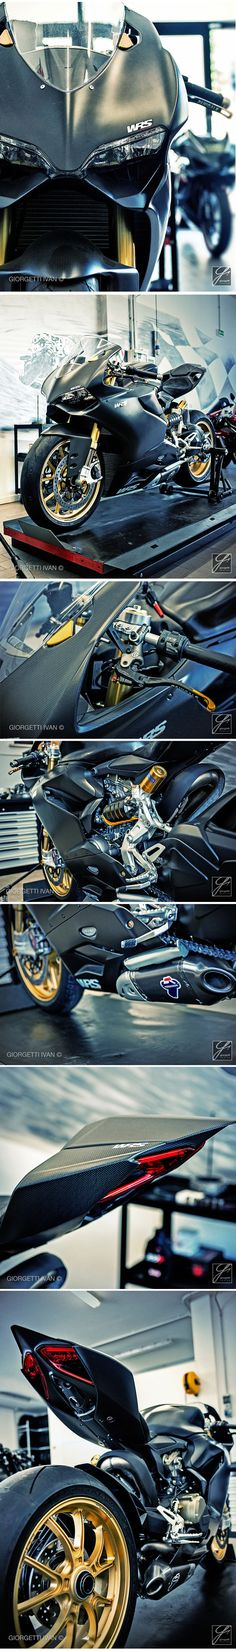 Ducati 1199 Full Carbon | #special #motorcycle by WRS evotech / Italy - www.wrs.sm | @Ivan Cherevko Giorgetti